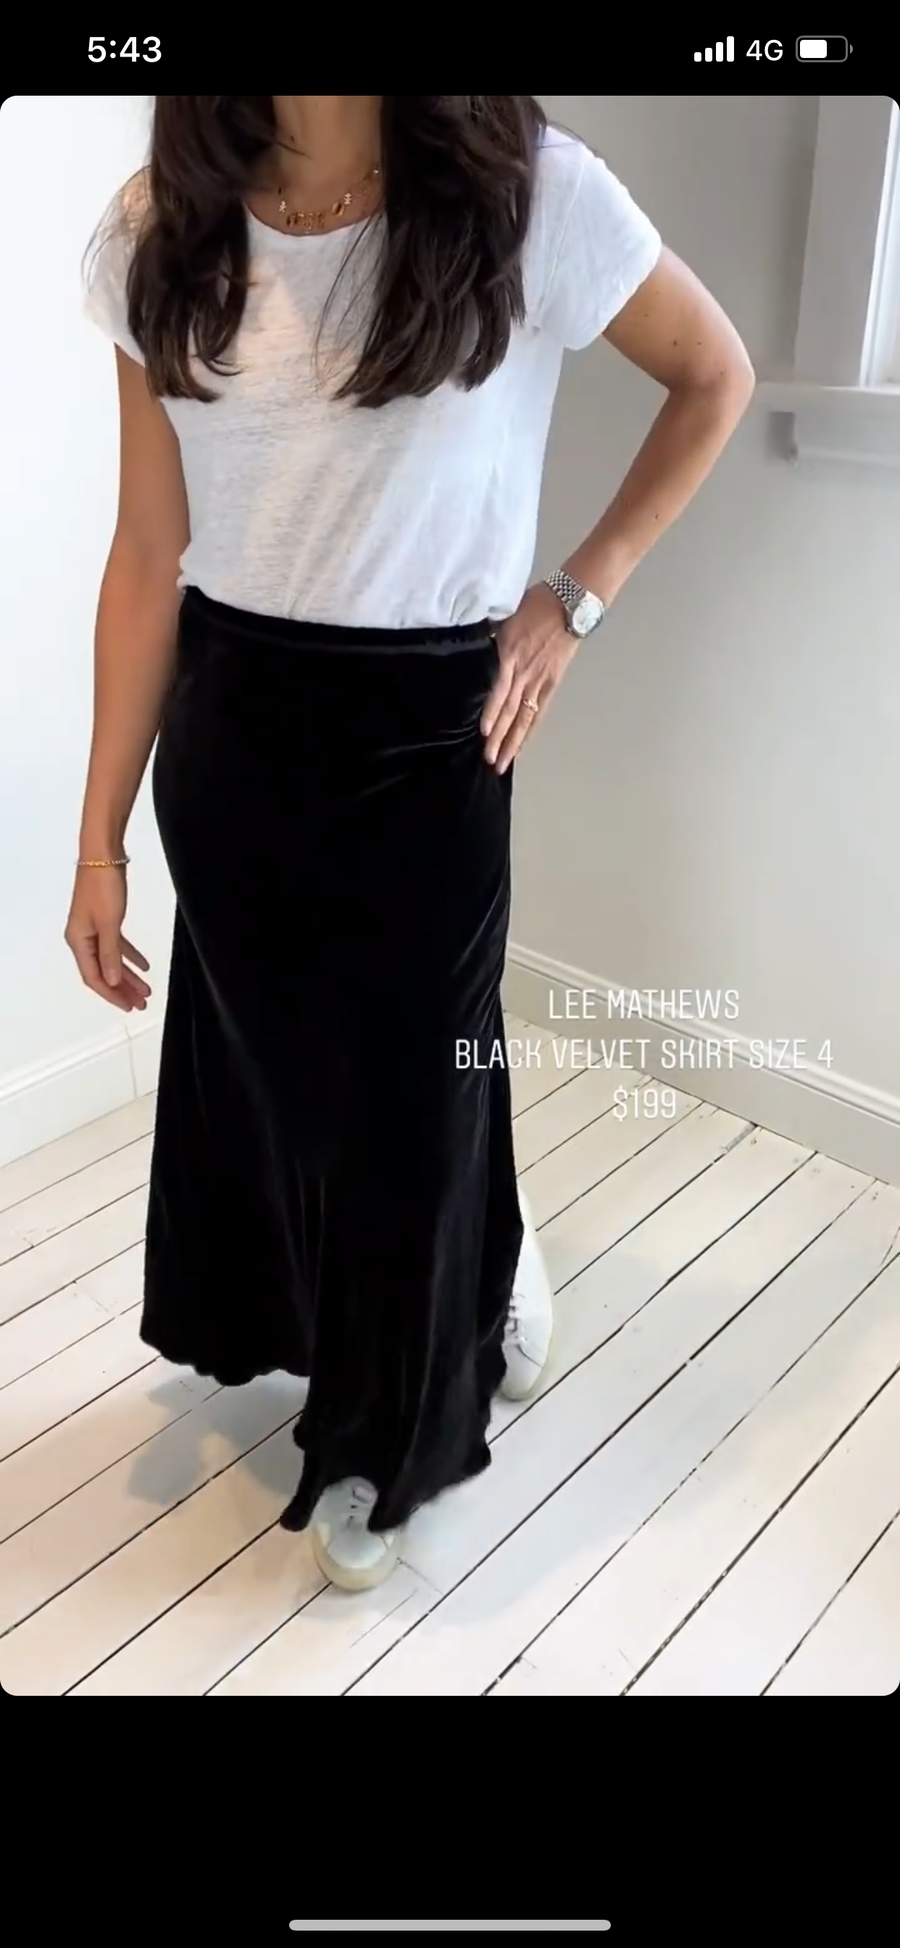 Lee Mathews black velvet skirt